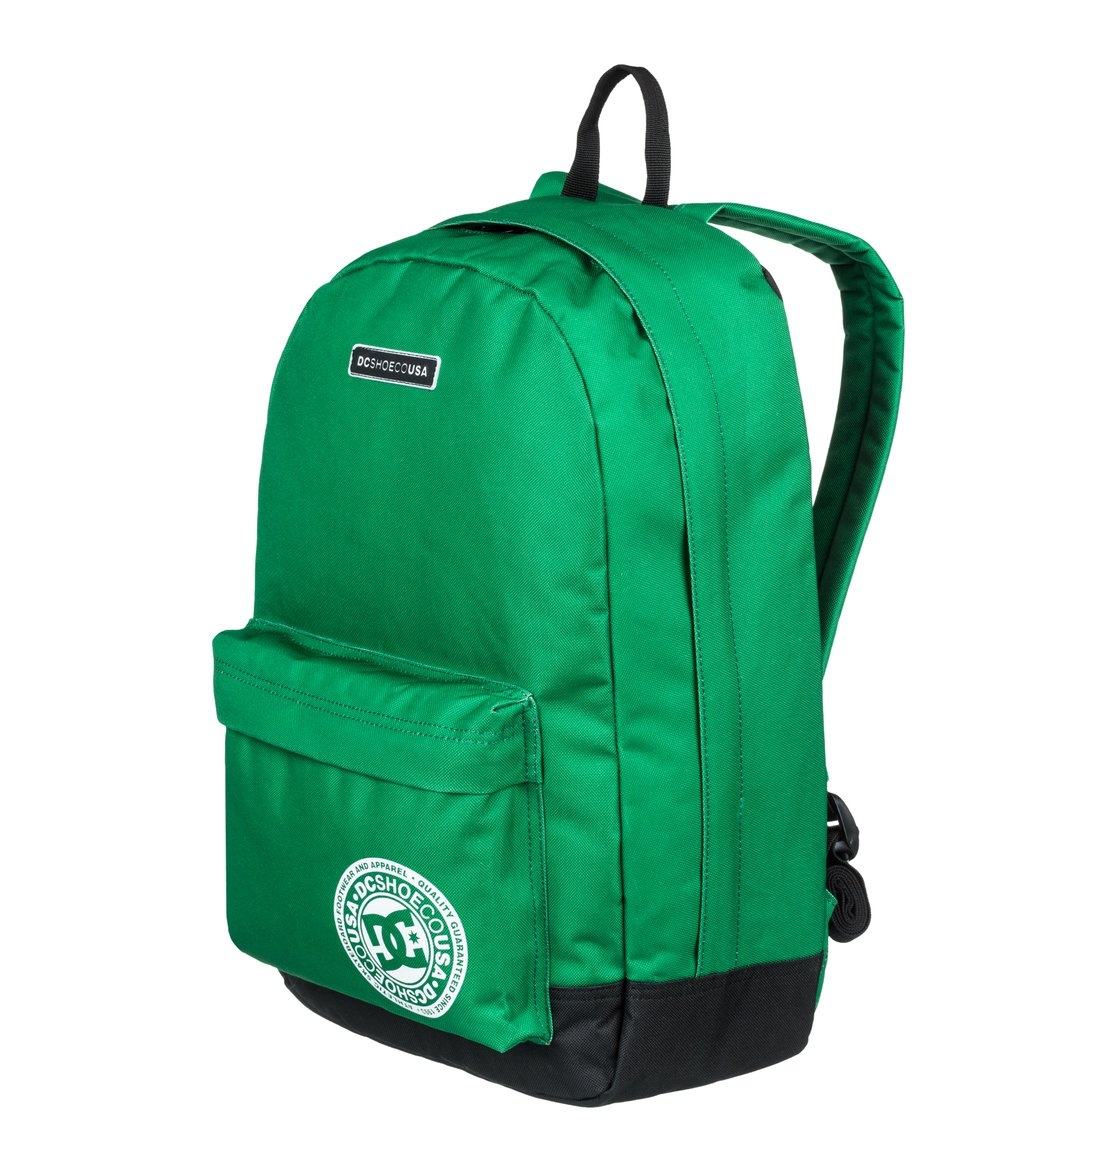 DC-Shoes-Backstack-18-5L-Sac-a-dos-taille-moyenne-pour-Homme-EDYBP03180 miniature 25